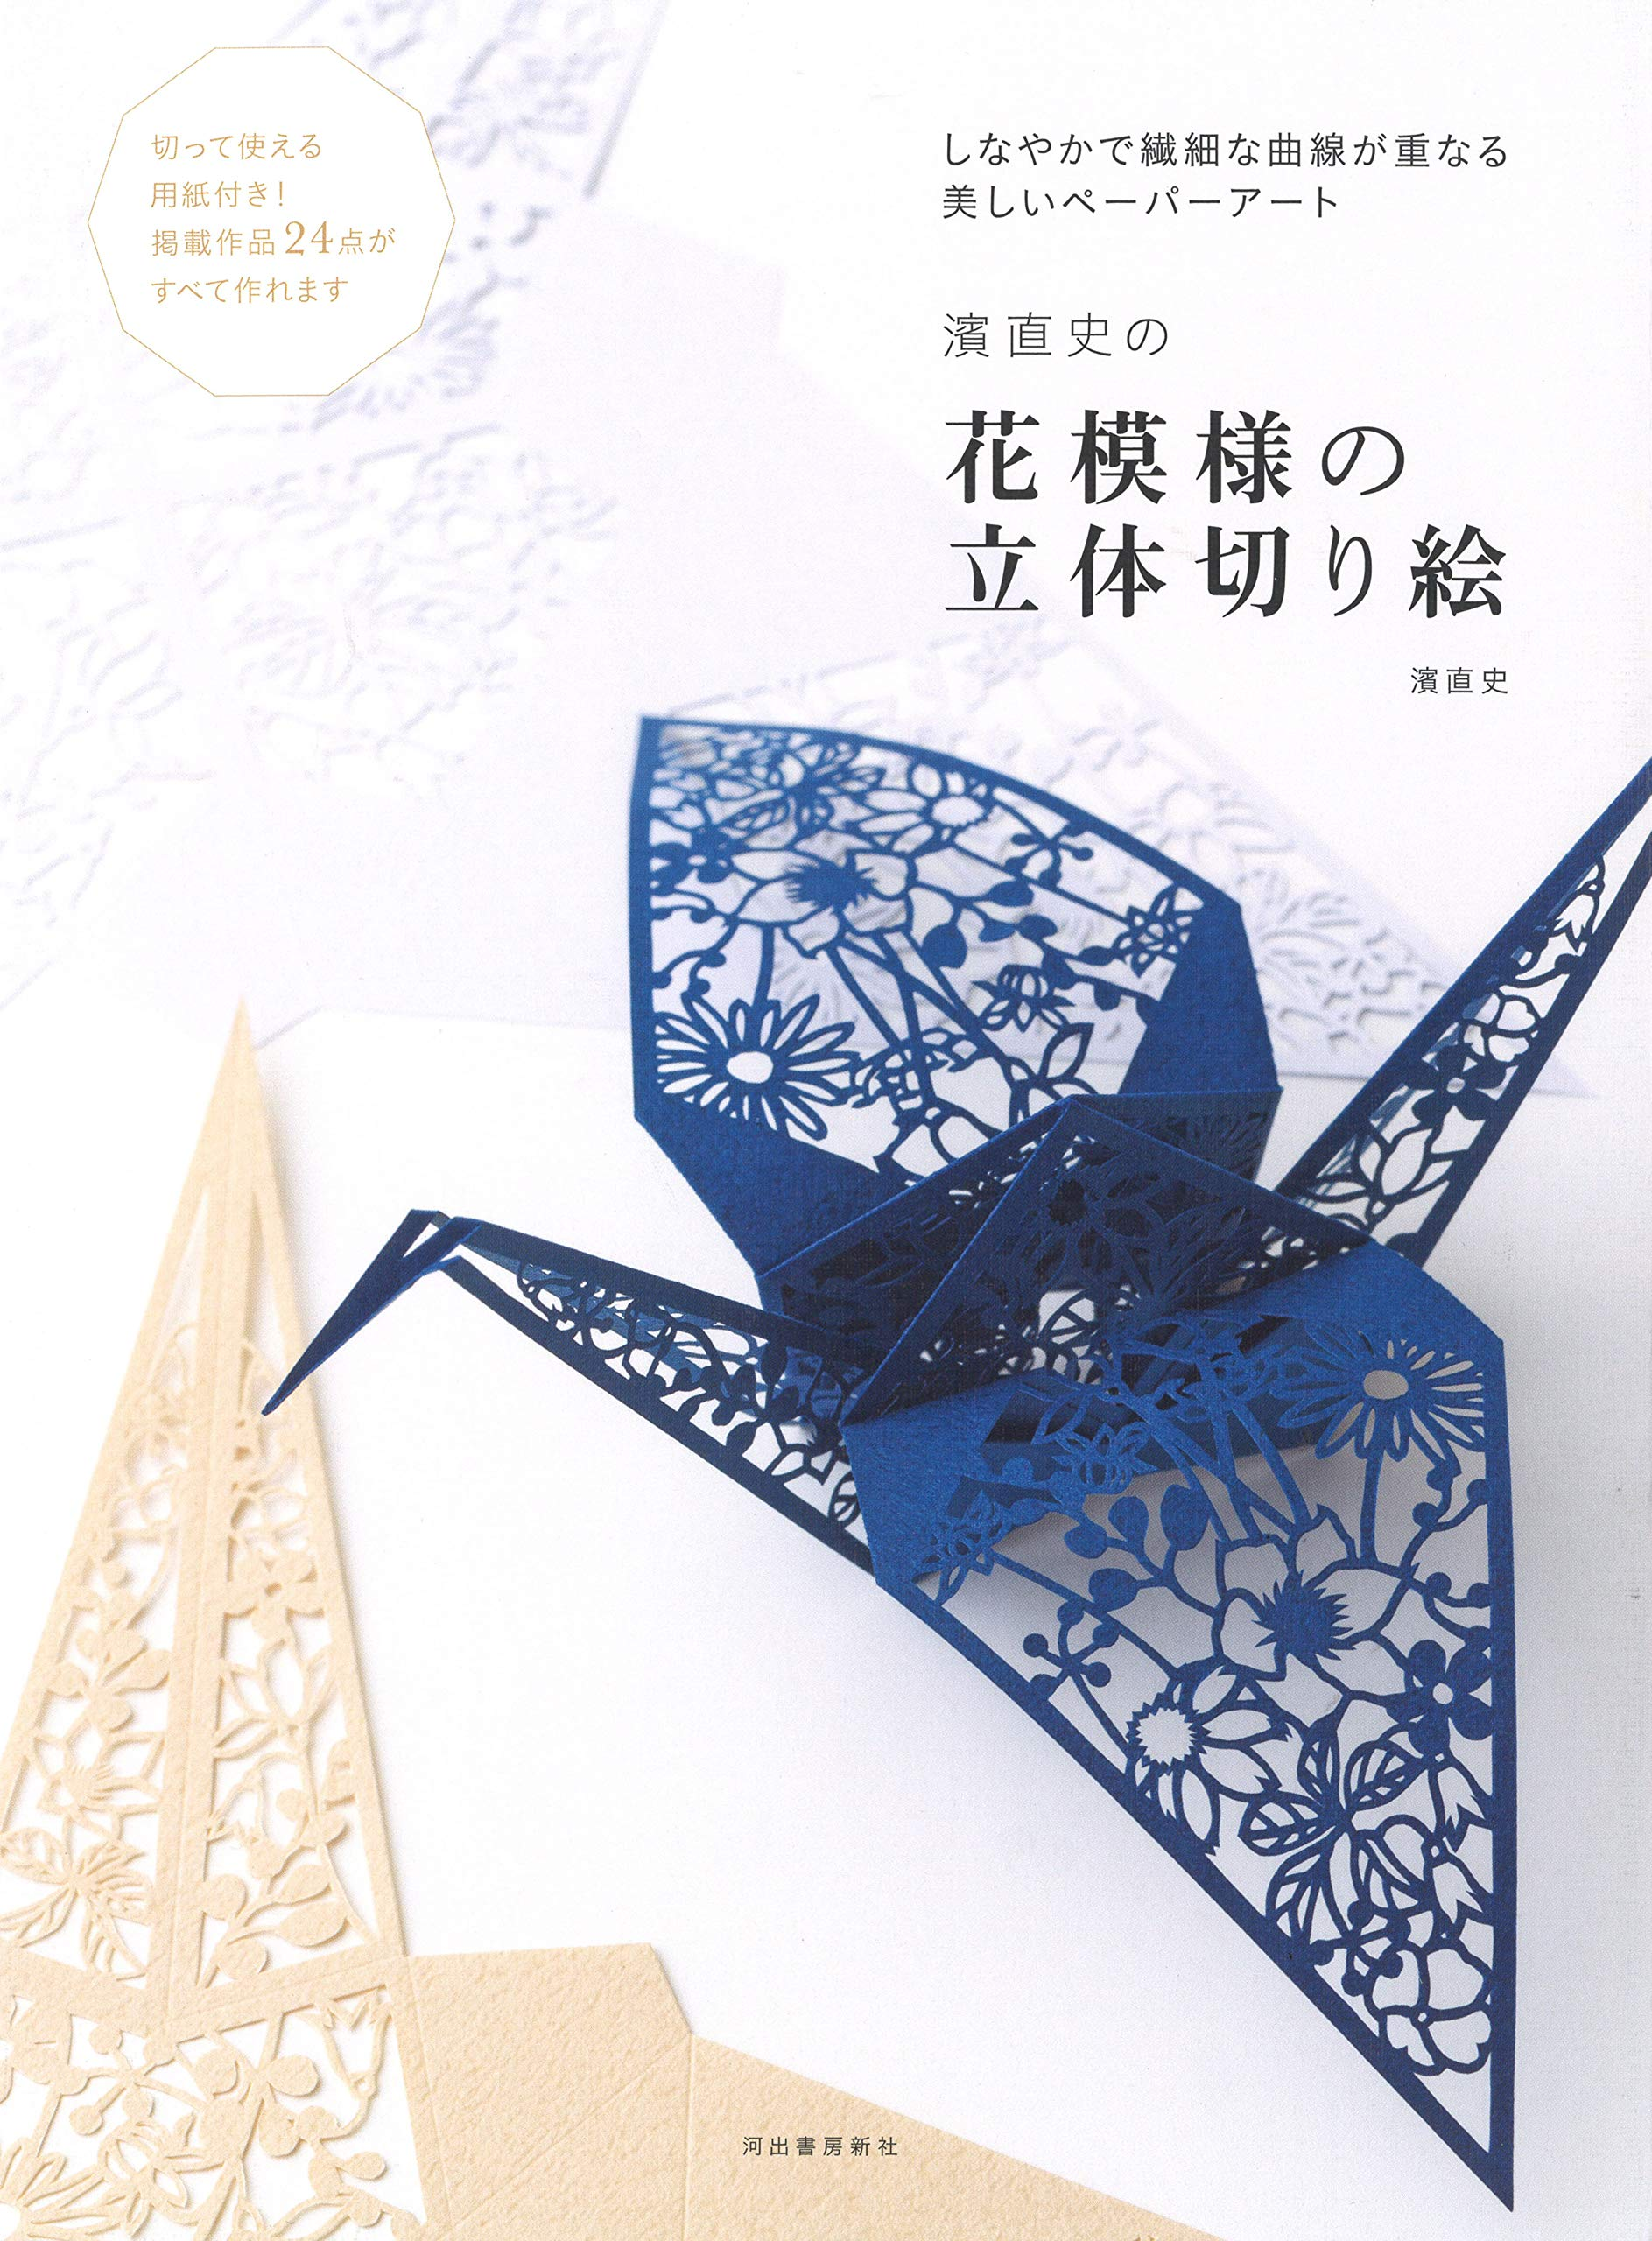 3D cut picture of Tadashi Hama of floral book